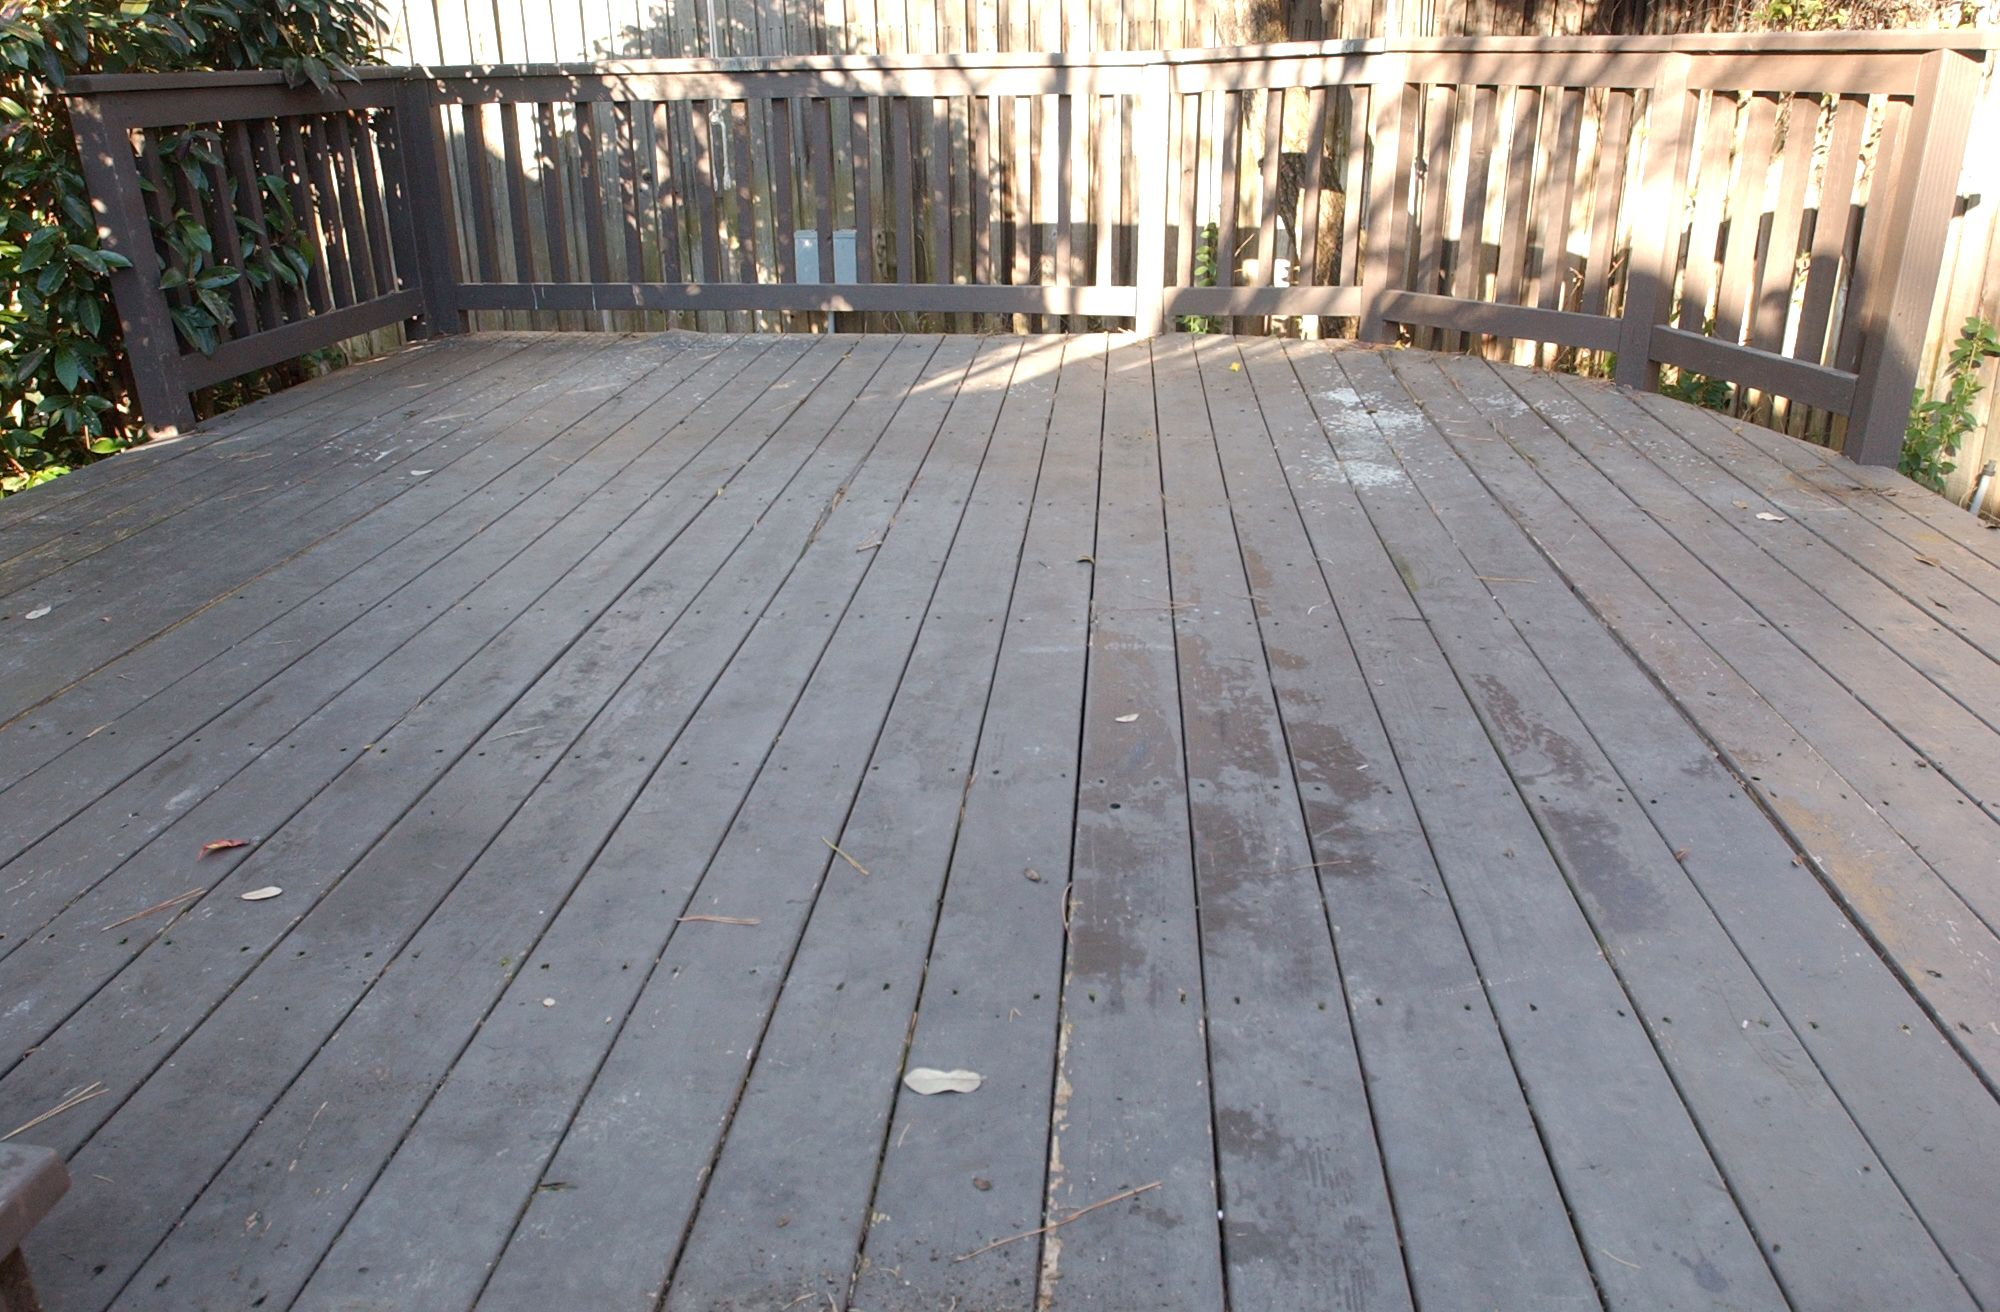 This Deck Has A Dark Old Solid Stain On It Solid Stains Last The